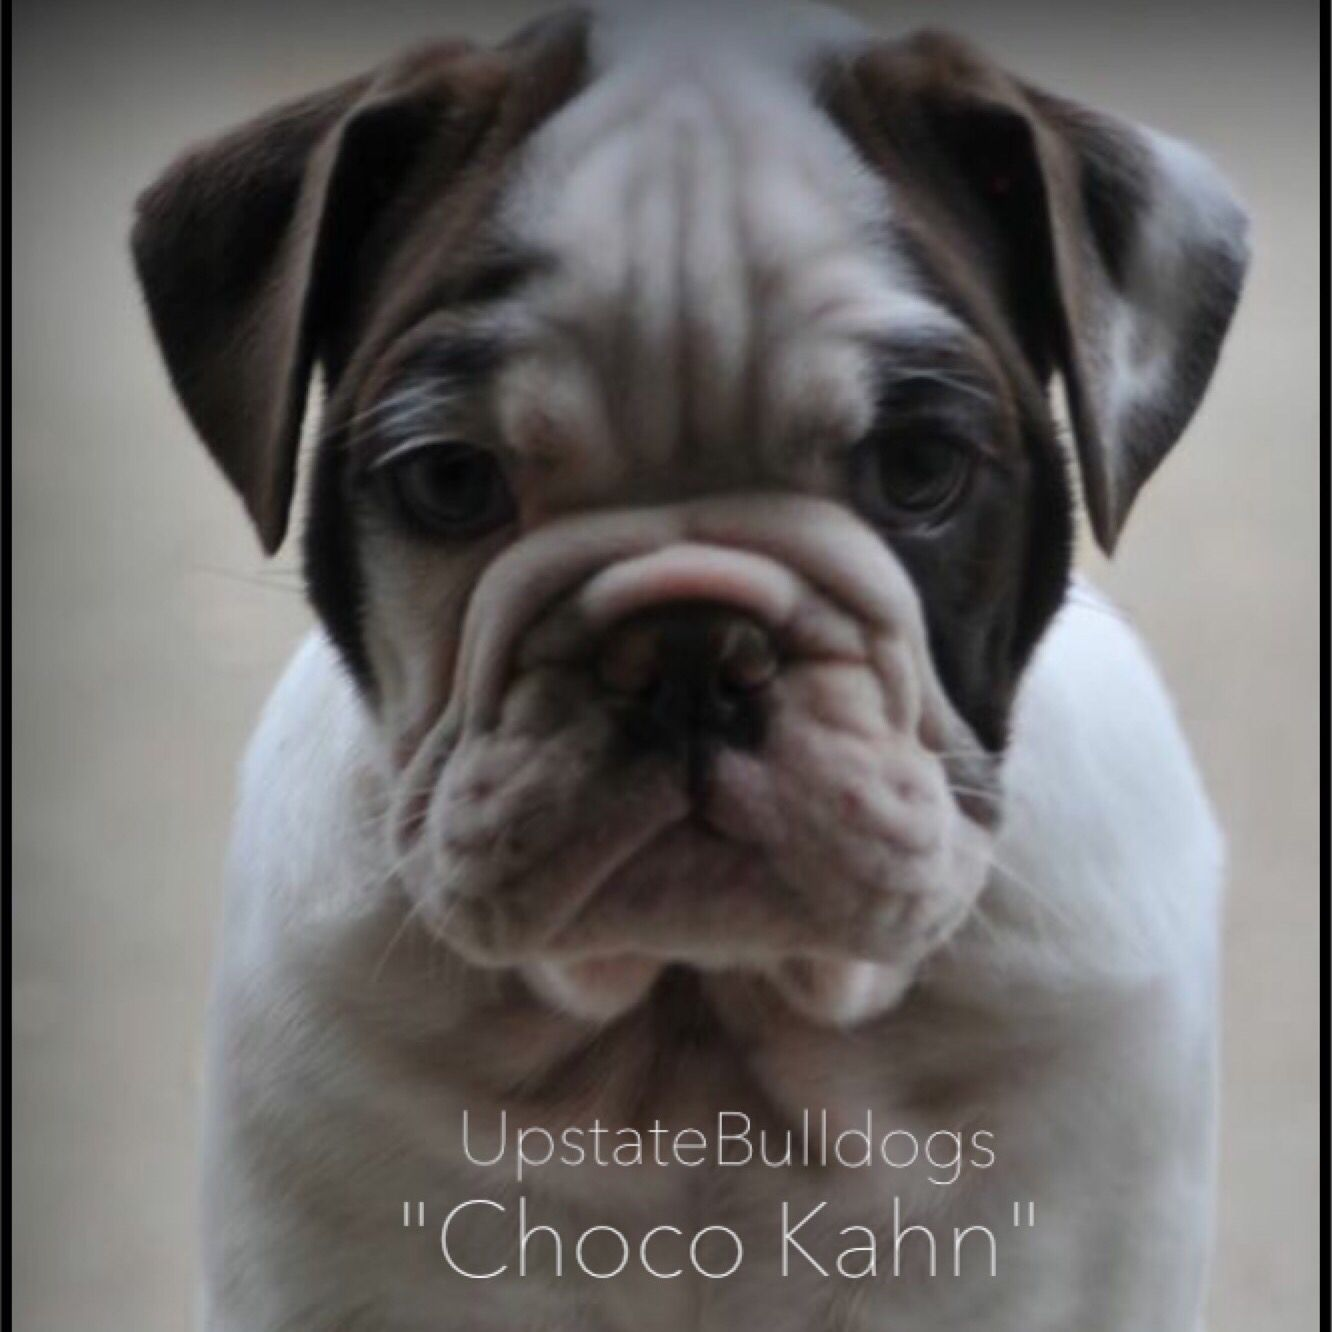 Upstatebulldogs Available For New Homes Contact Us Today To